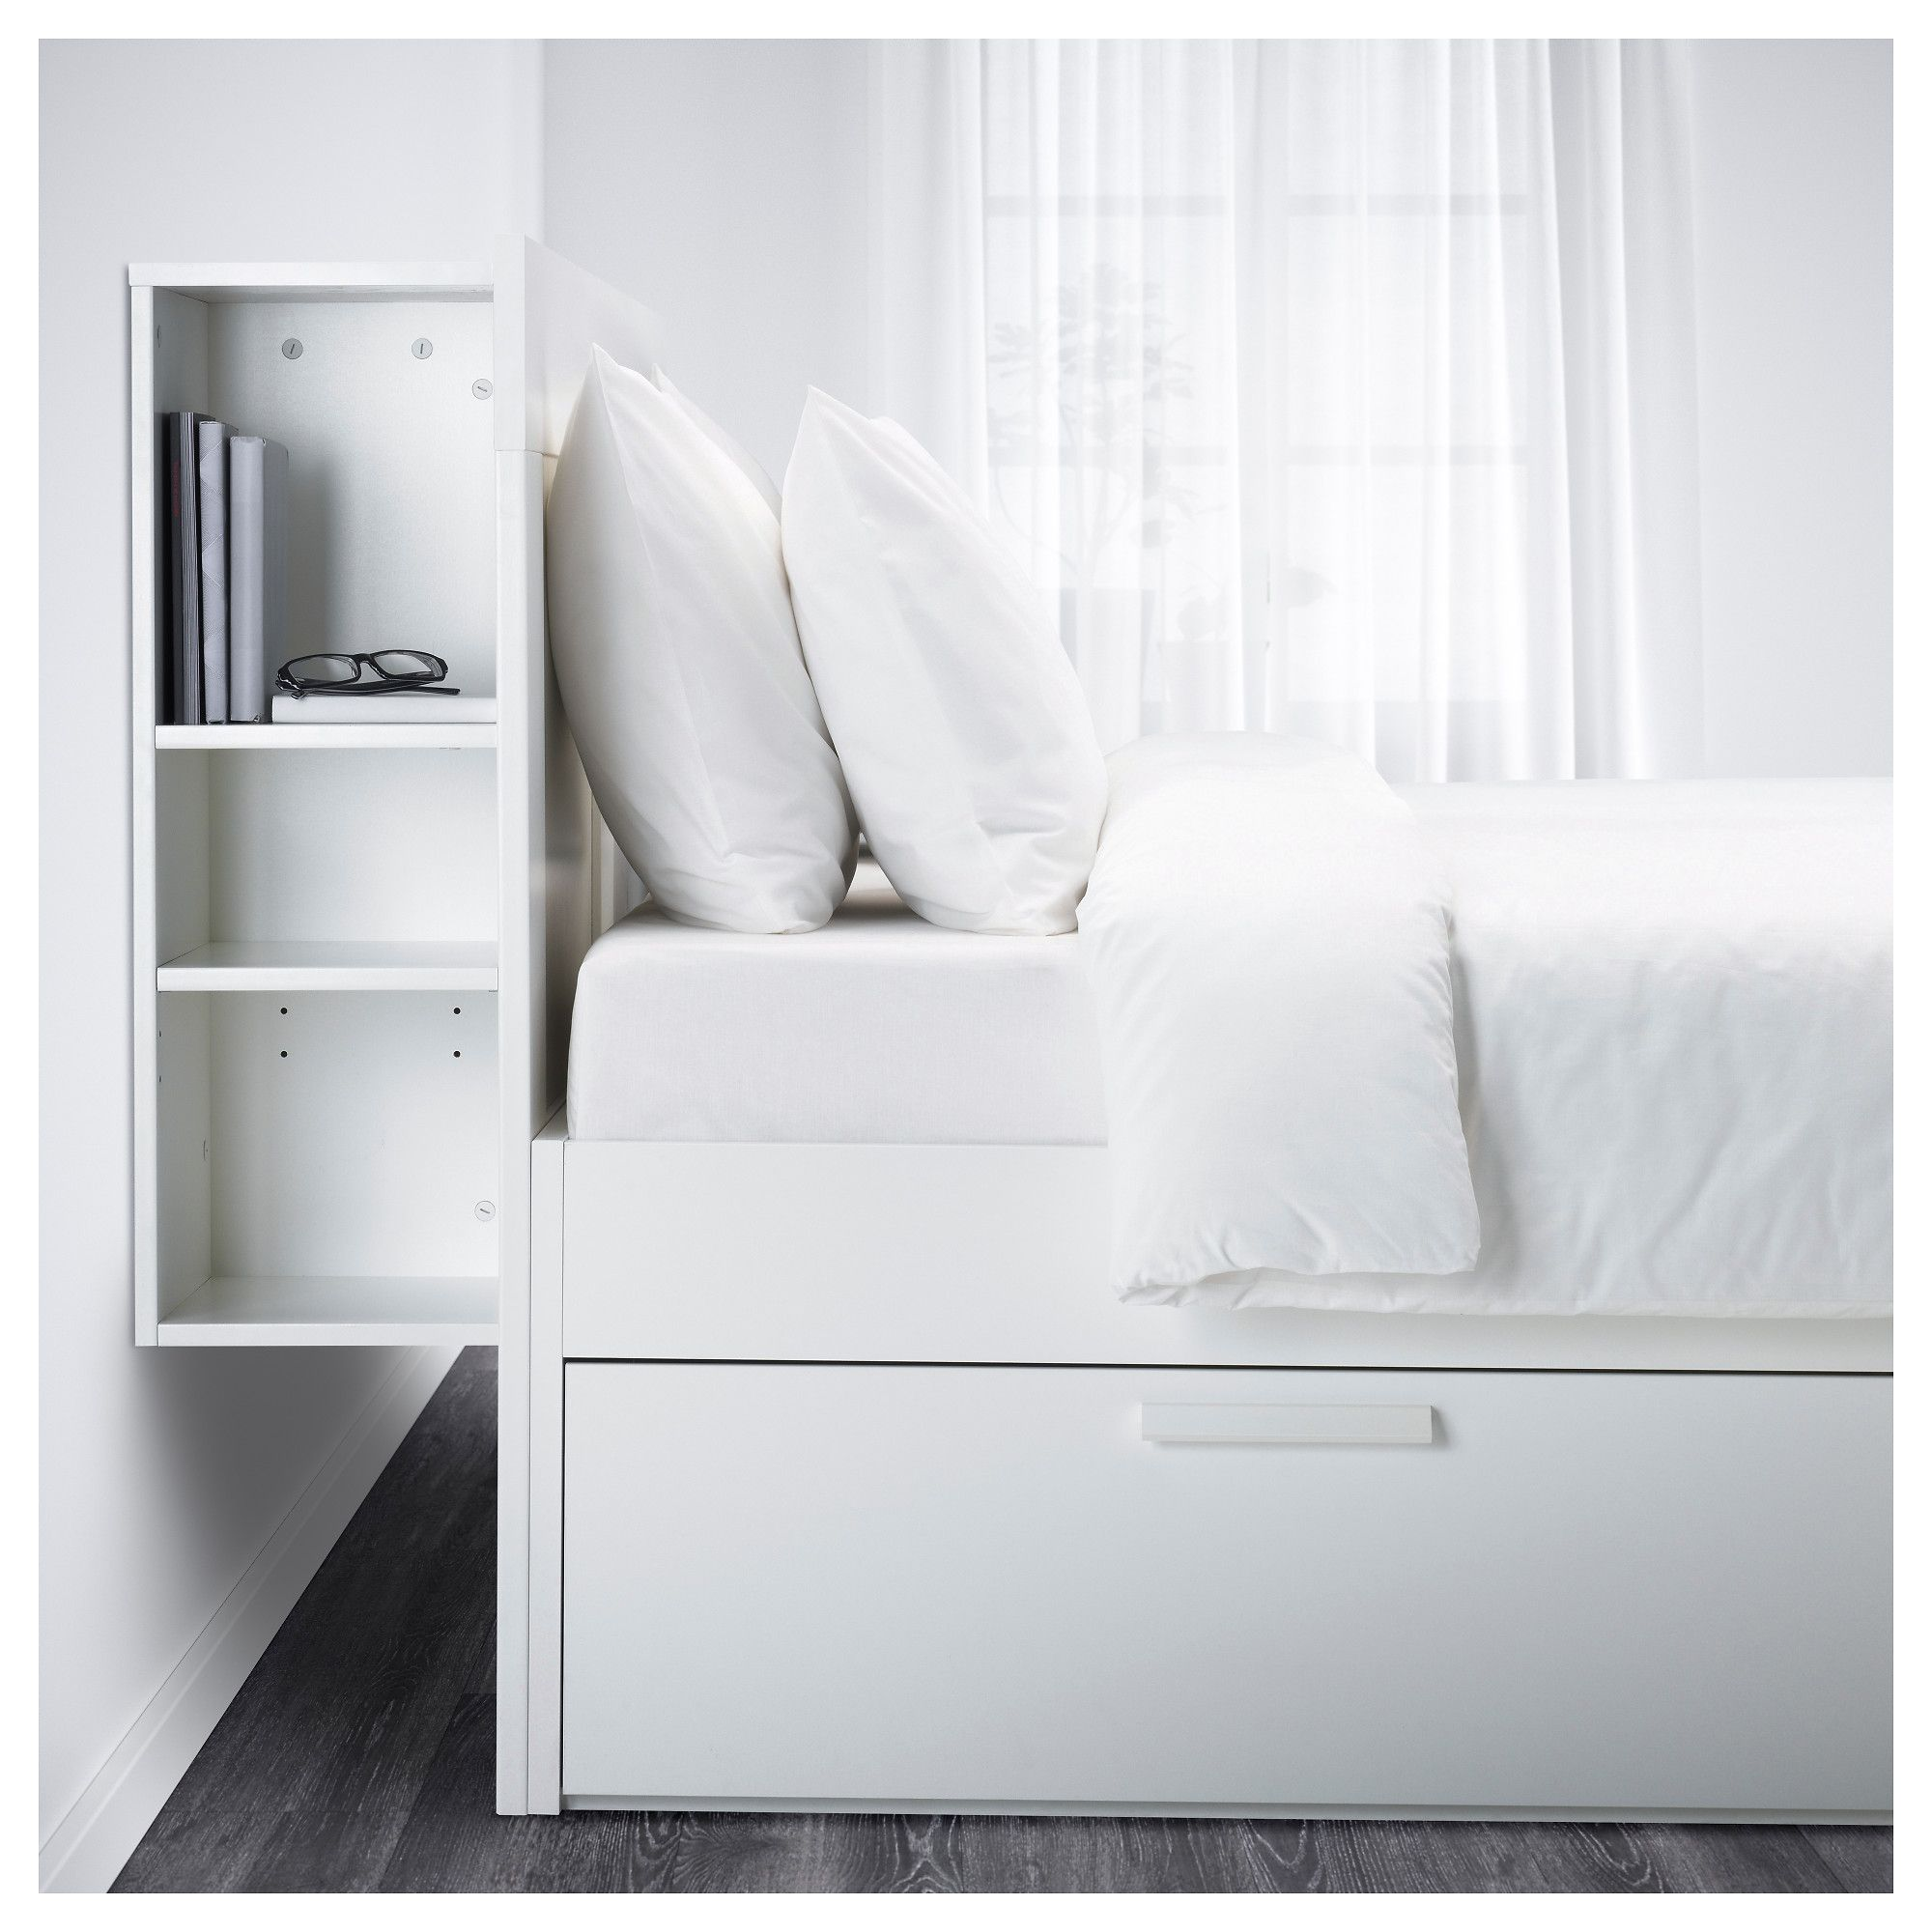 Ikea Brimnes Bett 160x200 Ikea Brimnes Bed Frame With Storage Headboard White Lönset